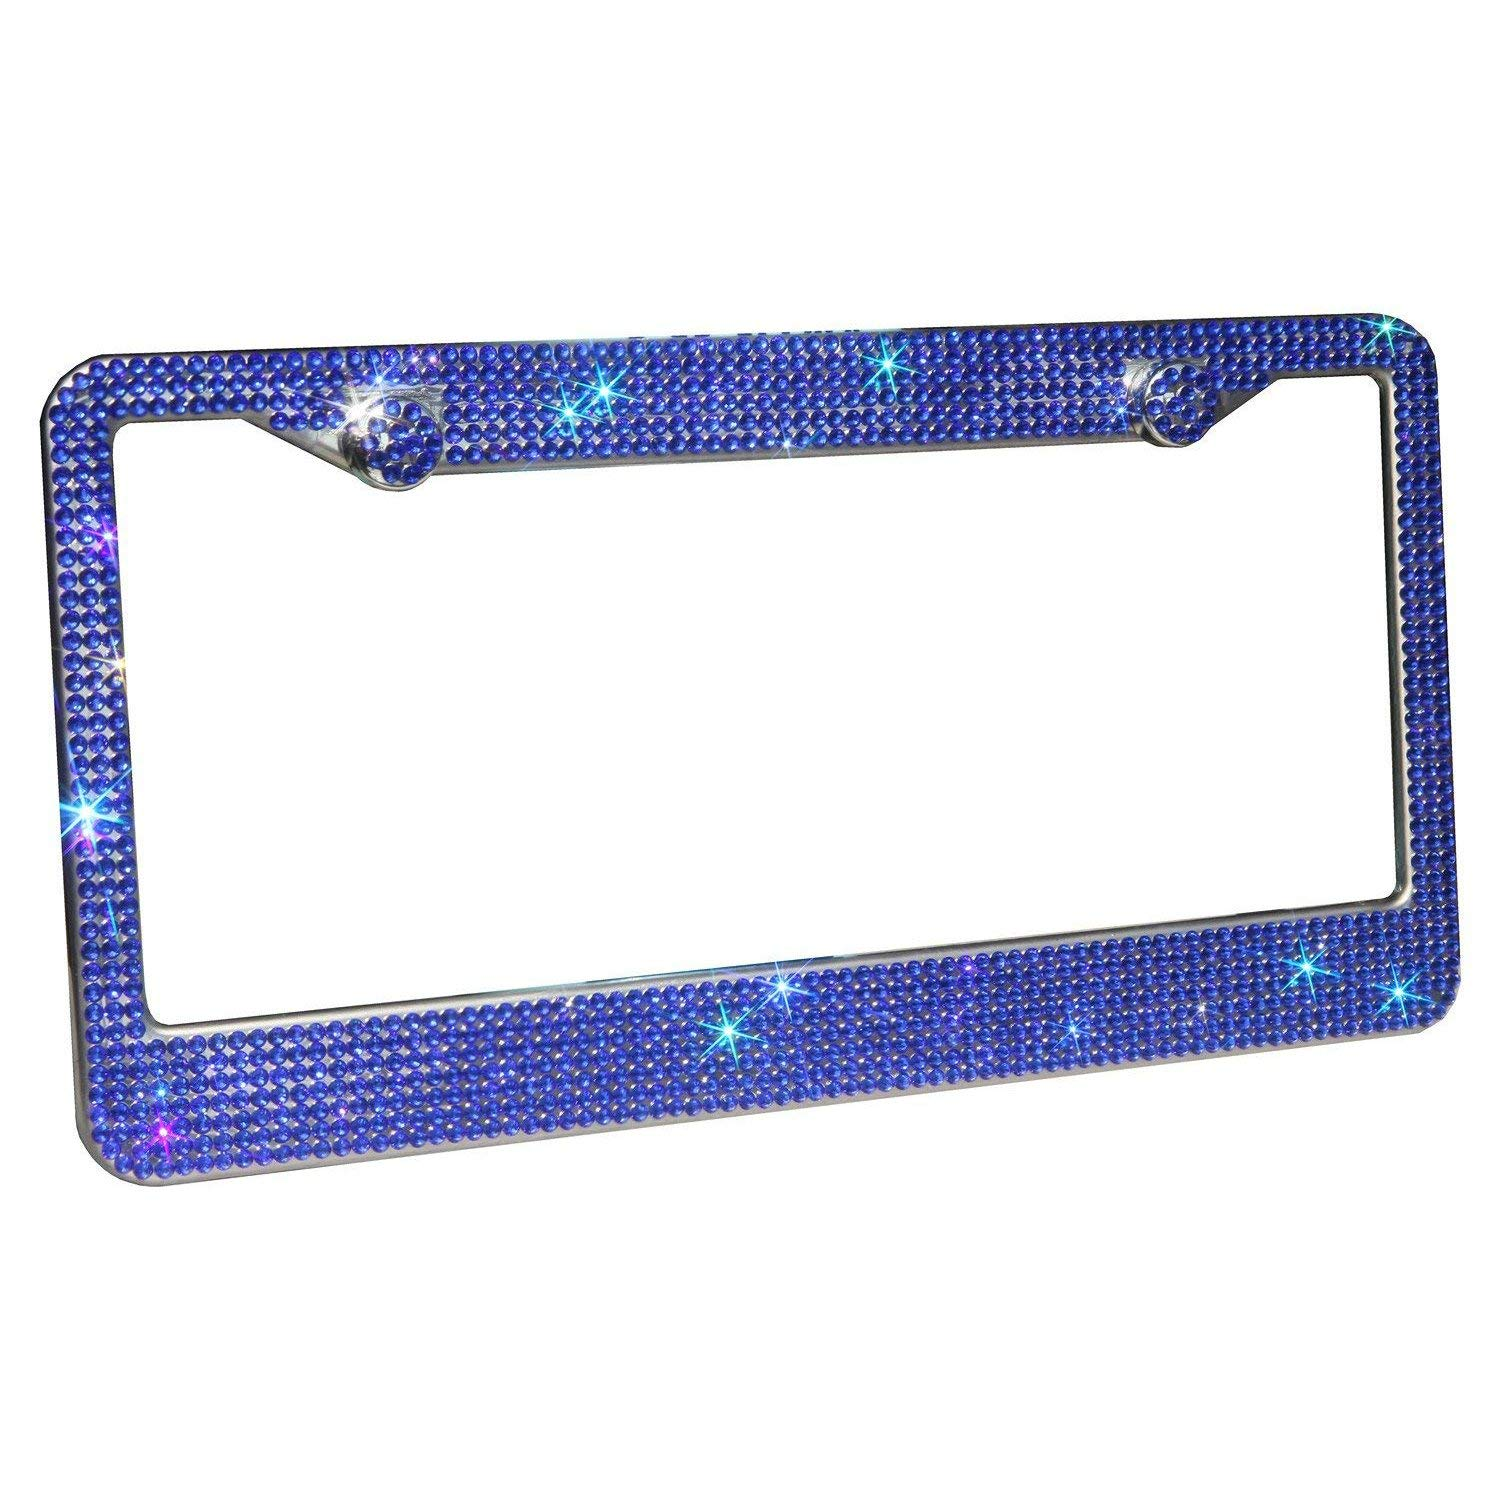 Luxury Pure Handcrafted Bling Rhinestone Premium Stainless Steel License Plate Frame for Cars with Anti-Theft Screws Caps Set Blue Crystal CCTRADE 2 Pack Bling License Plate Frames